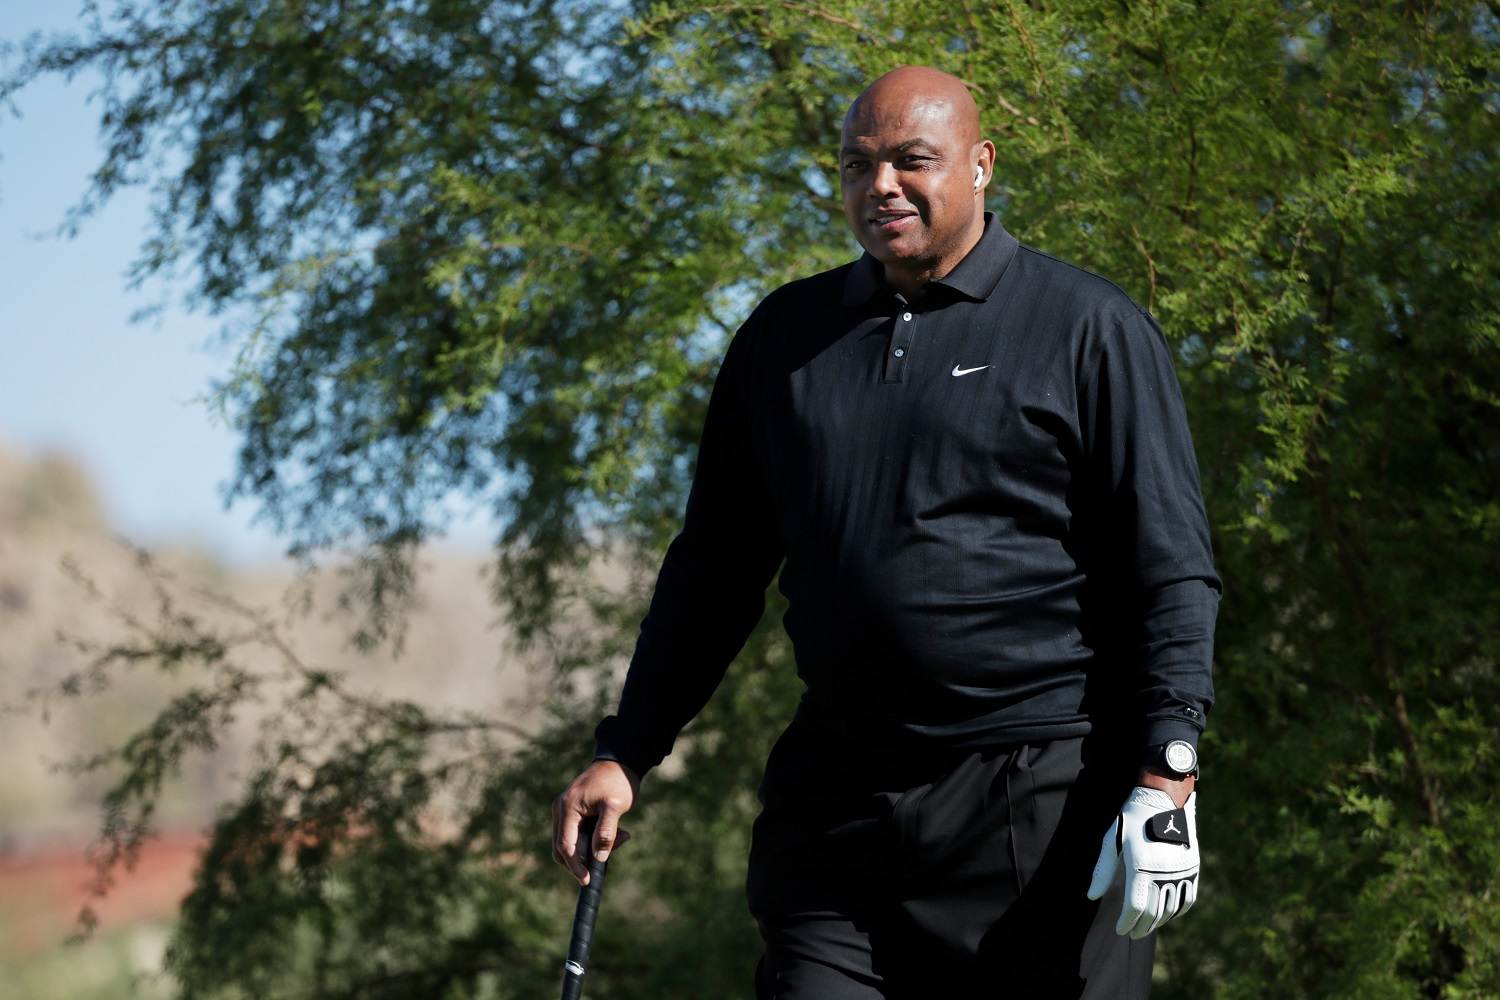 TNT basketball analyst Charles Barkley broke away from NCAA Tournament talk to criticize both major political parties over their handling or race relations in the United States. |Cliff Hawkins/Getty Images for The Match